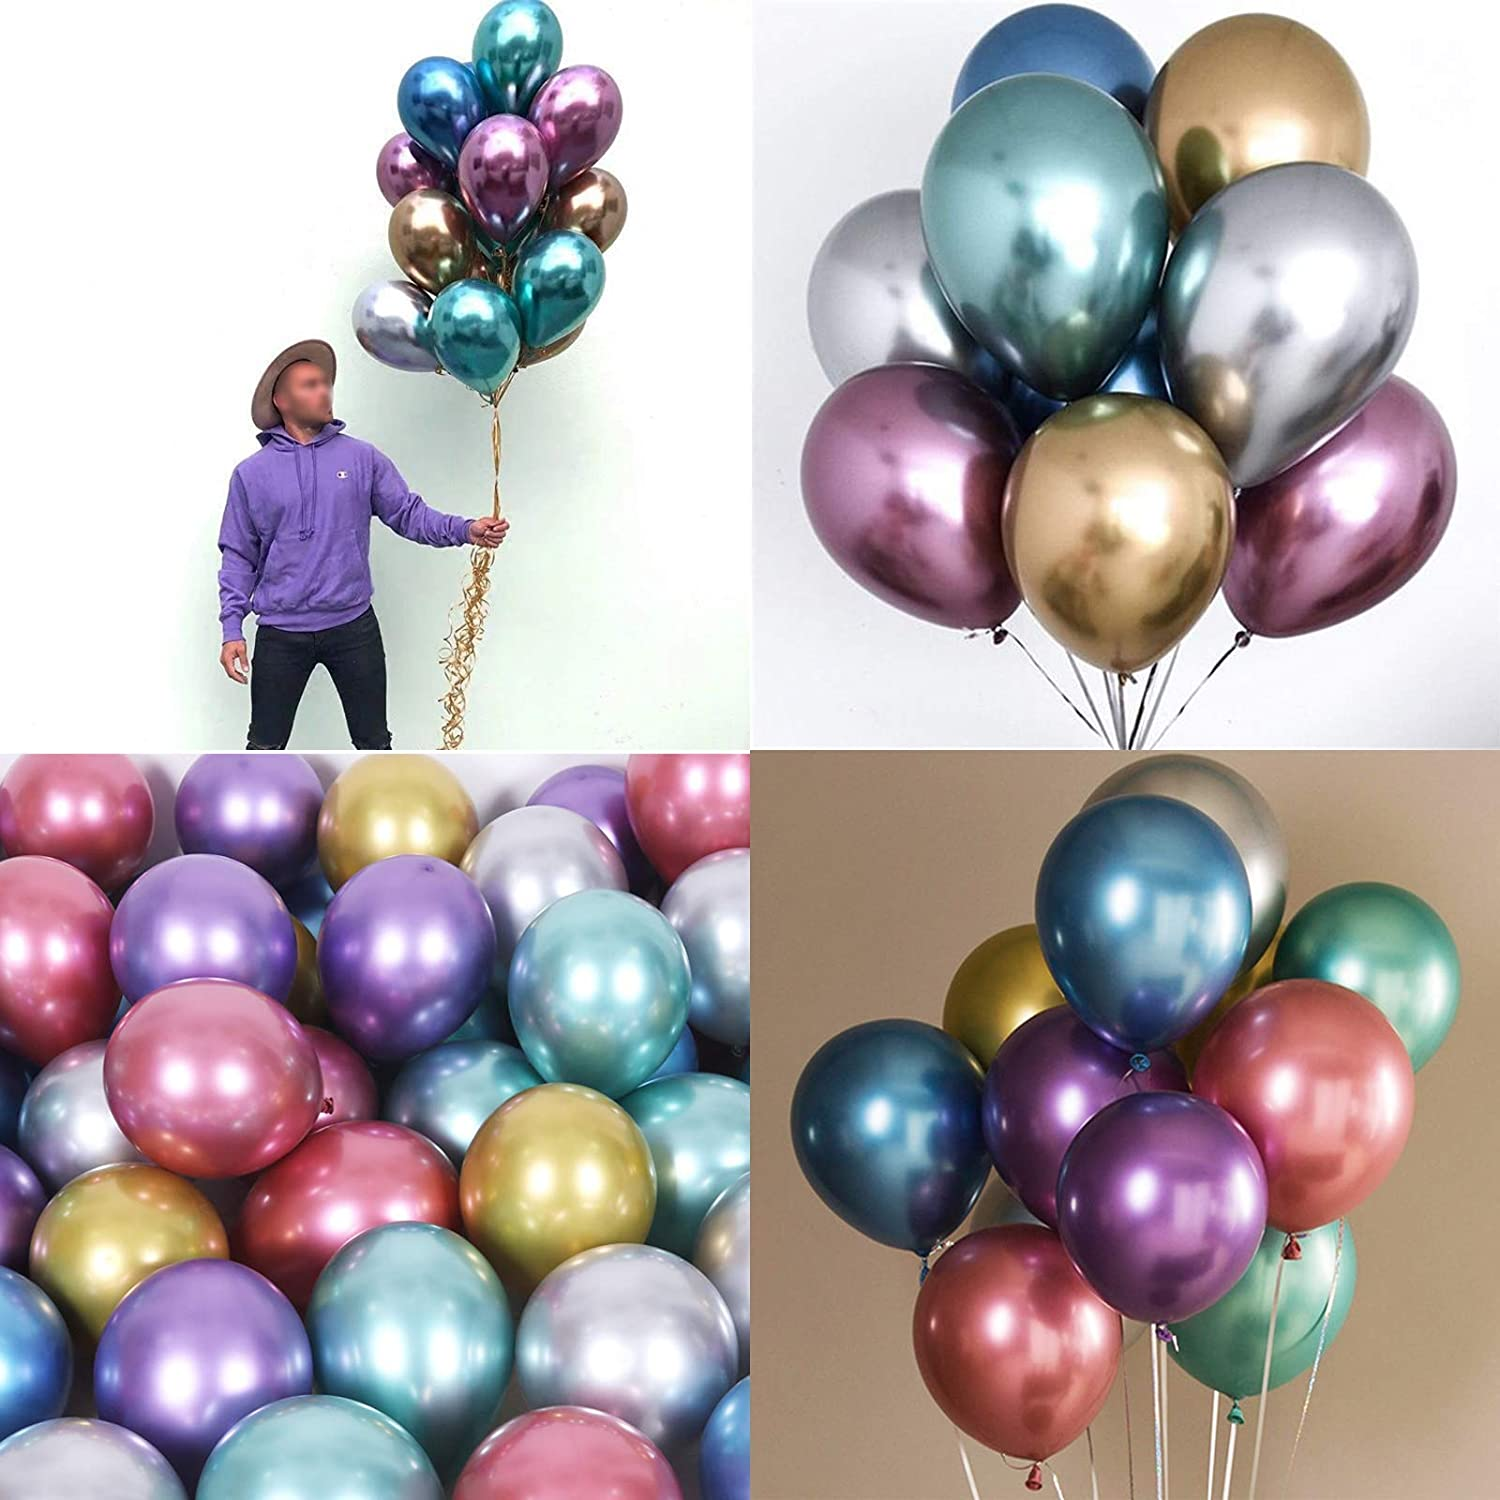 Metallic Balloons Chrome Shiny Latex 12 Inch Thicken Balloons for Wedding Party Baby Shower Christmas Birthday Carnival Party Decoration Supplies